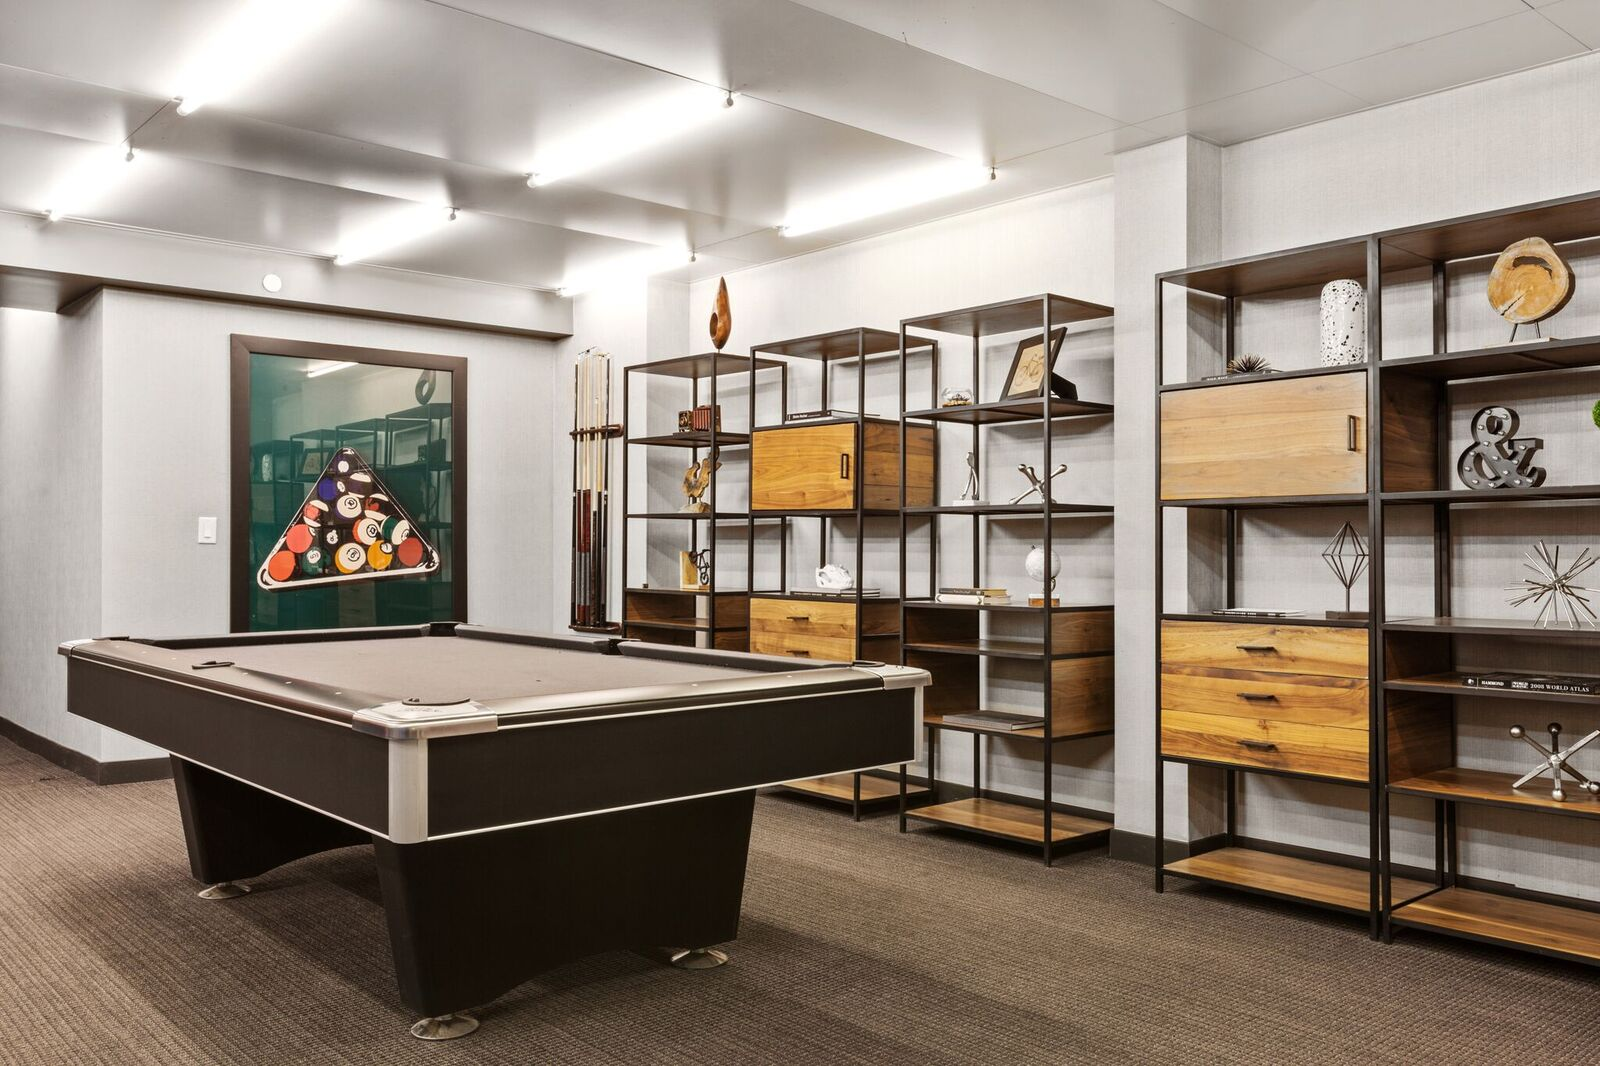 Clubhouse with Billiards at 461 Dean, Brooklyn, NY, 11217